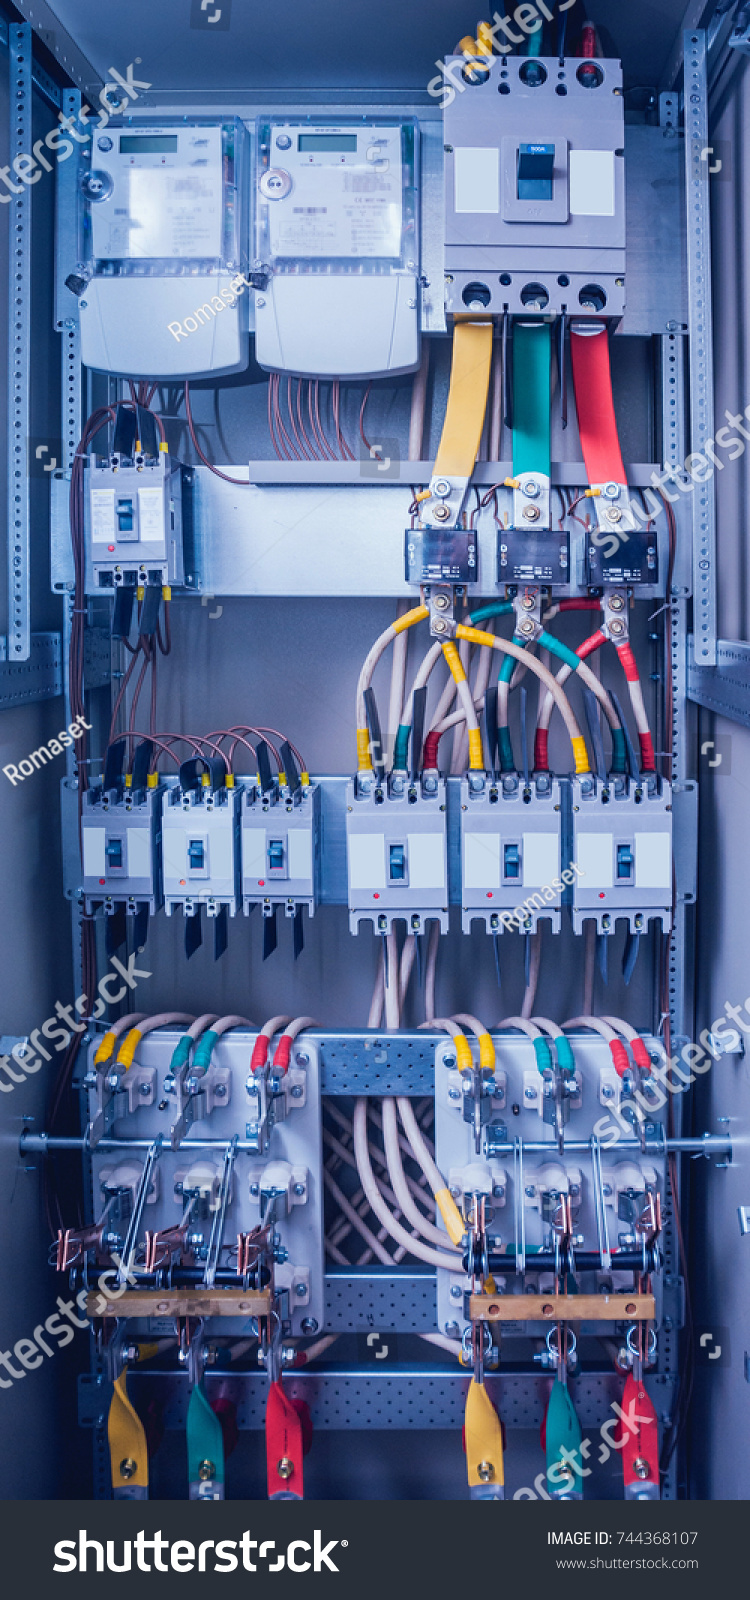 medium resolution of wires and switches in electric box electrical panel with fuses and